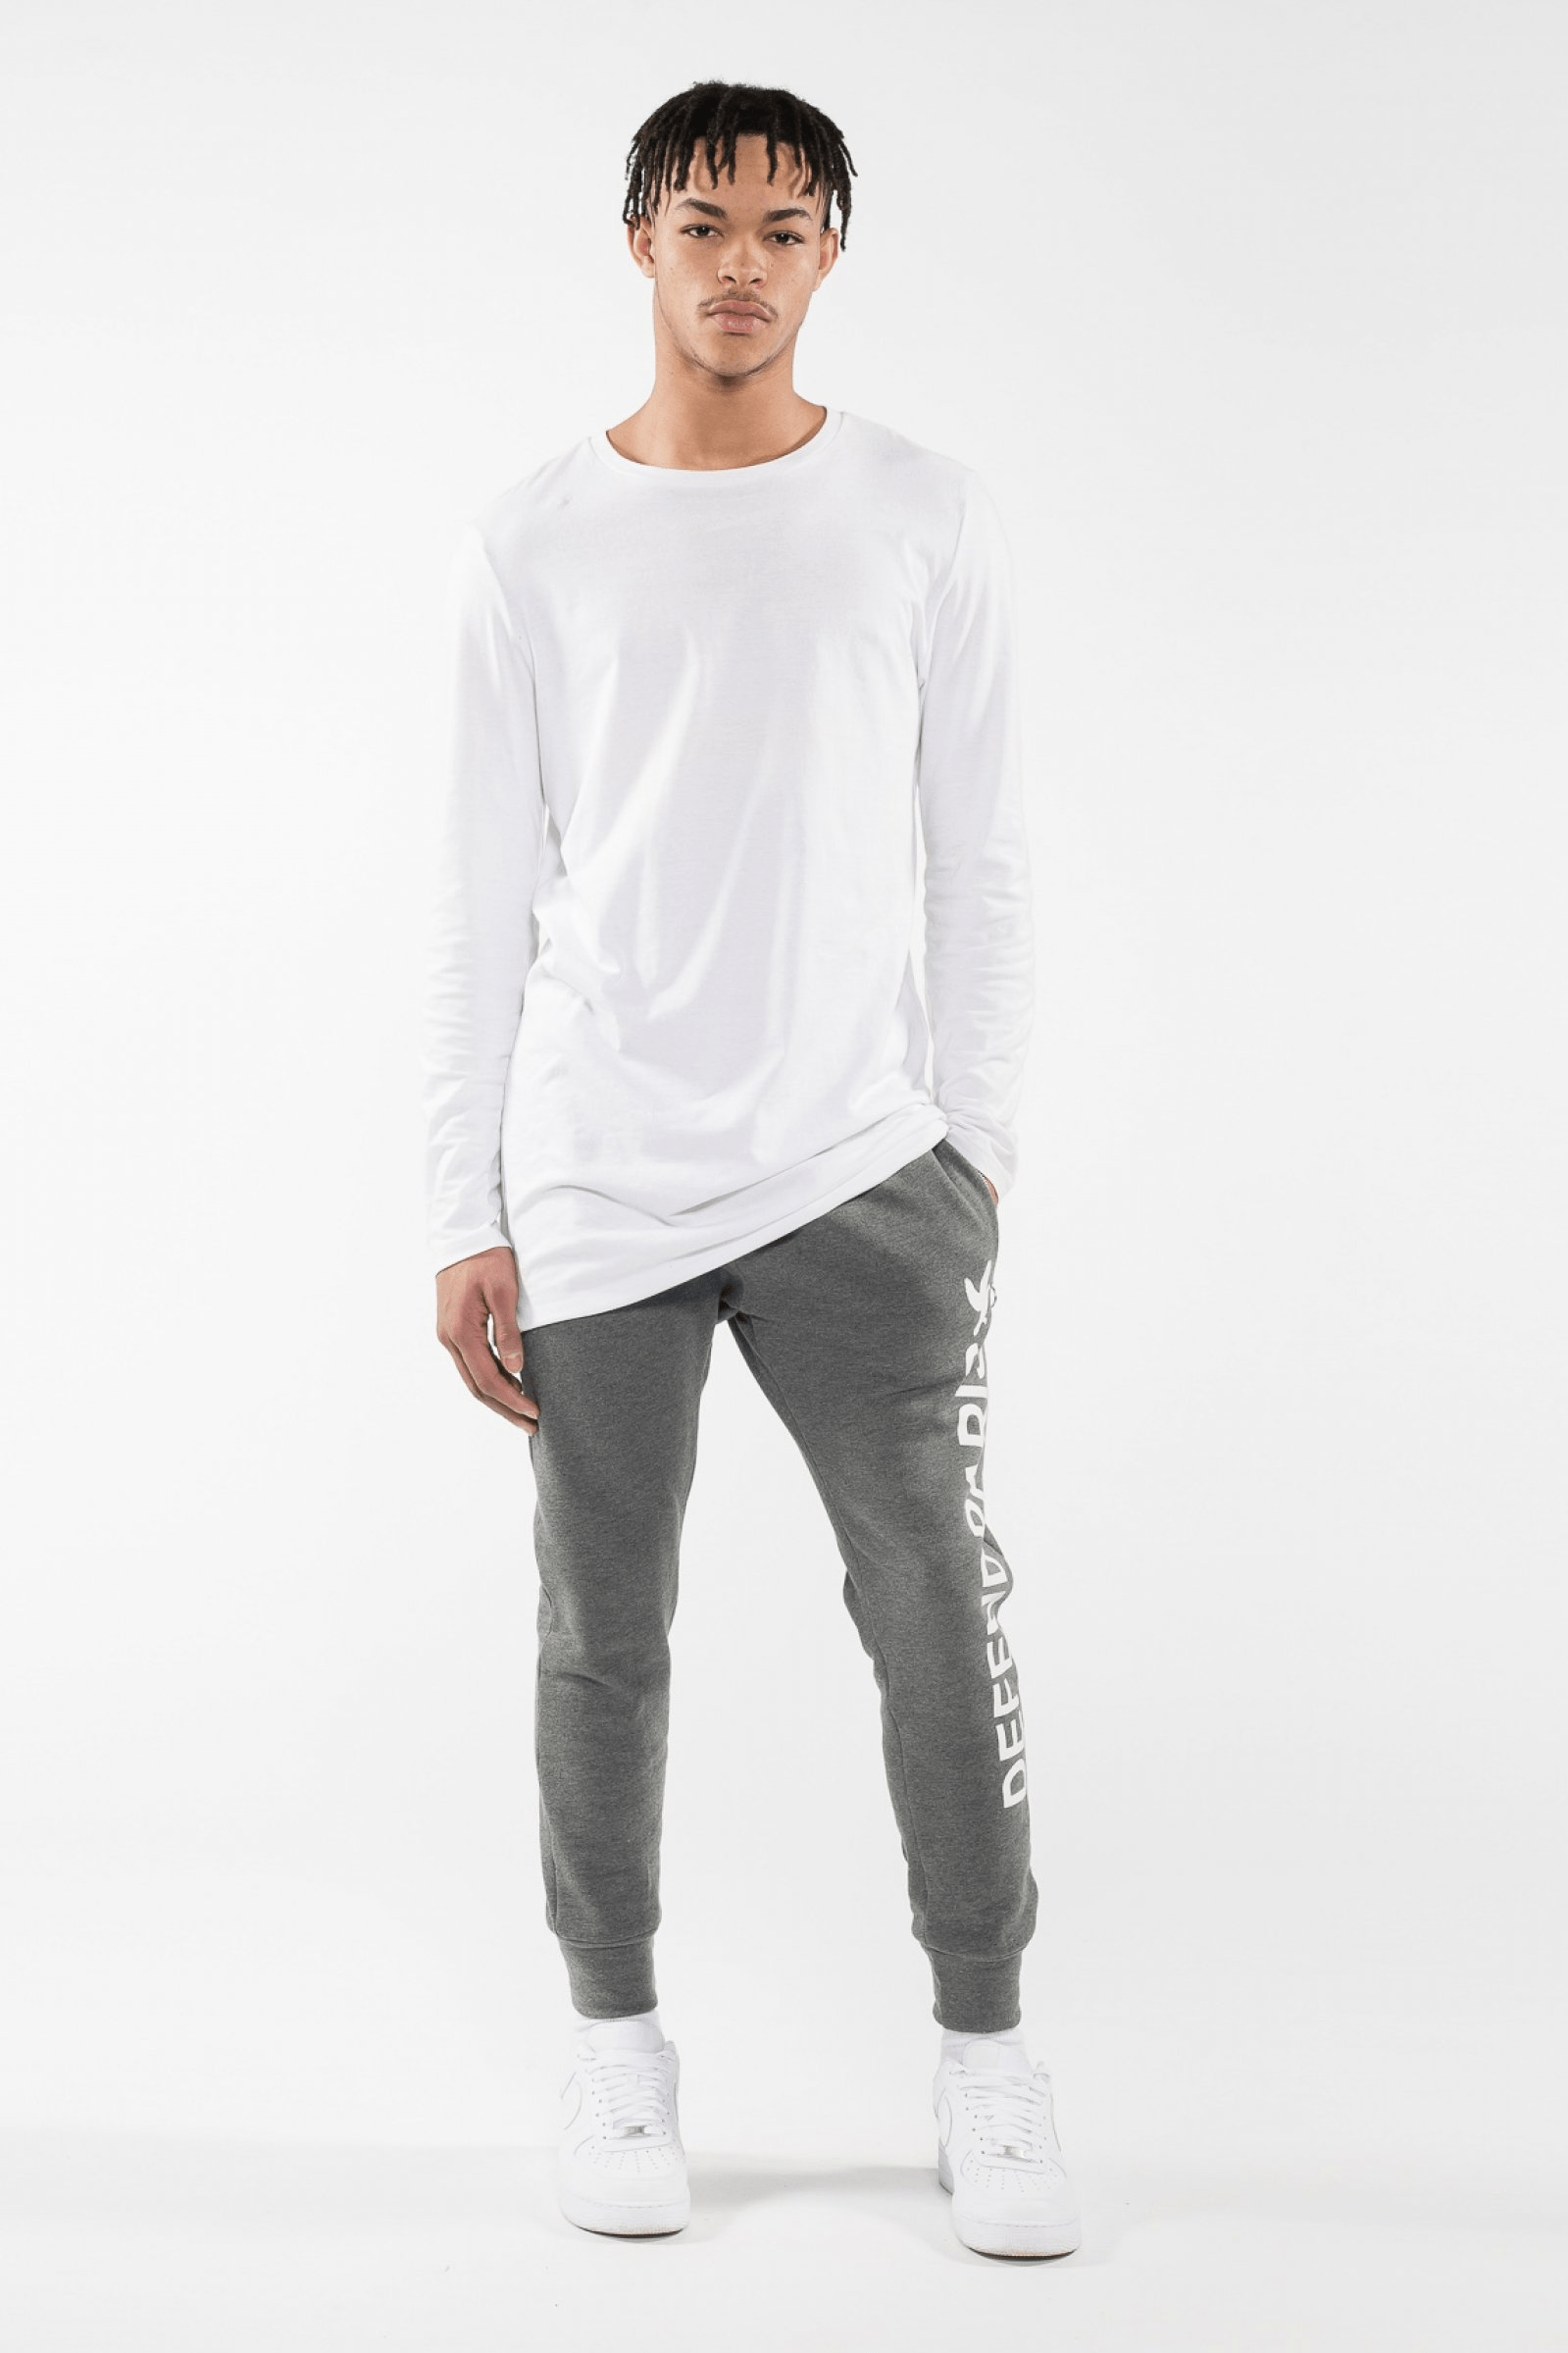 Cleef Pants Grey - The Bobby Boga